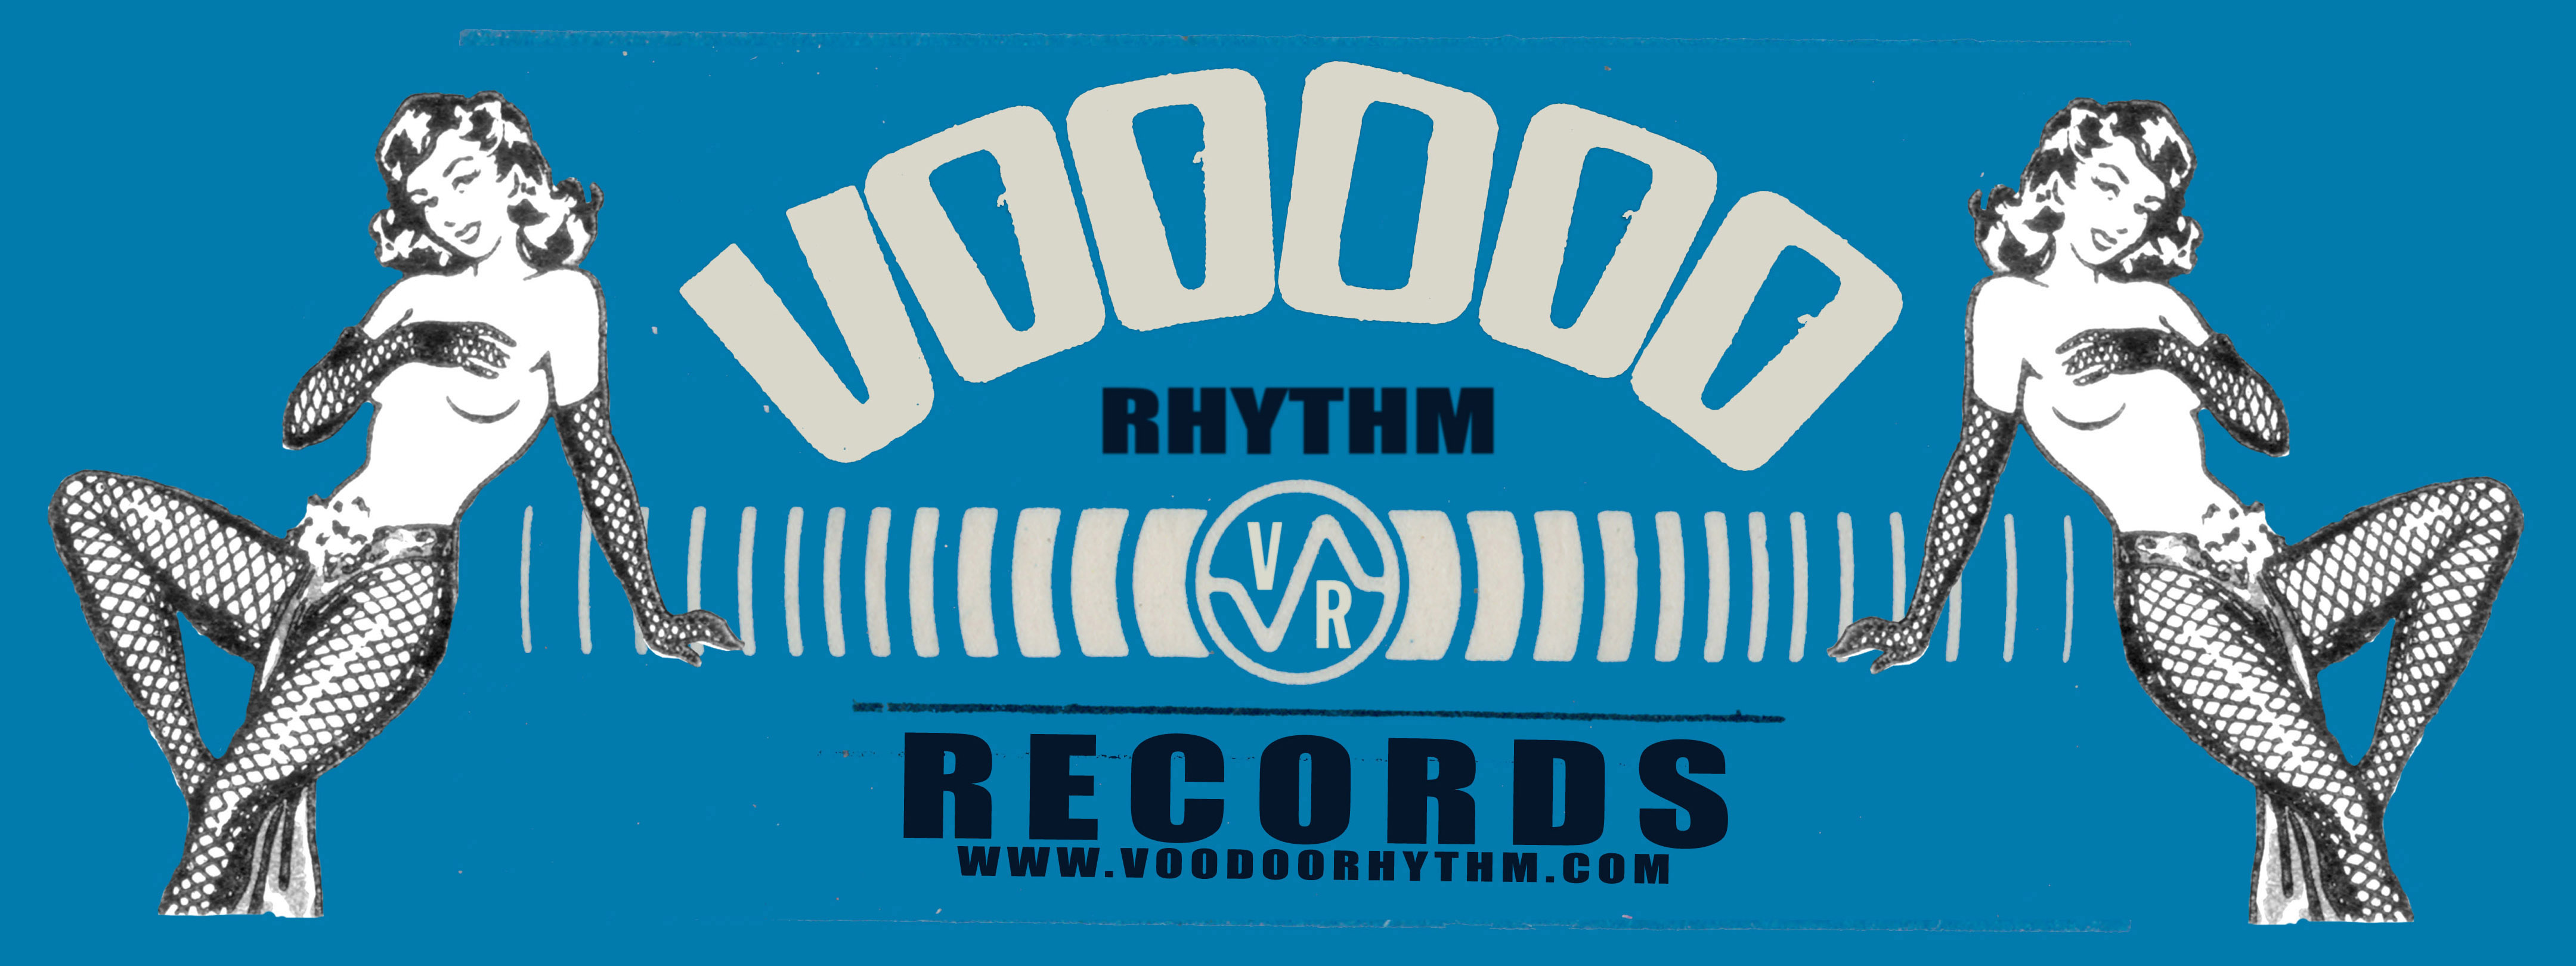 Voodoo Rhythm Records